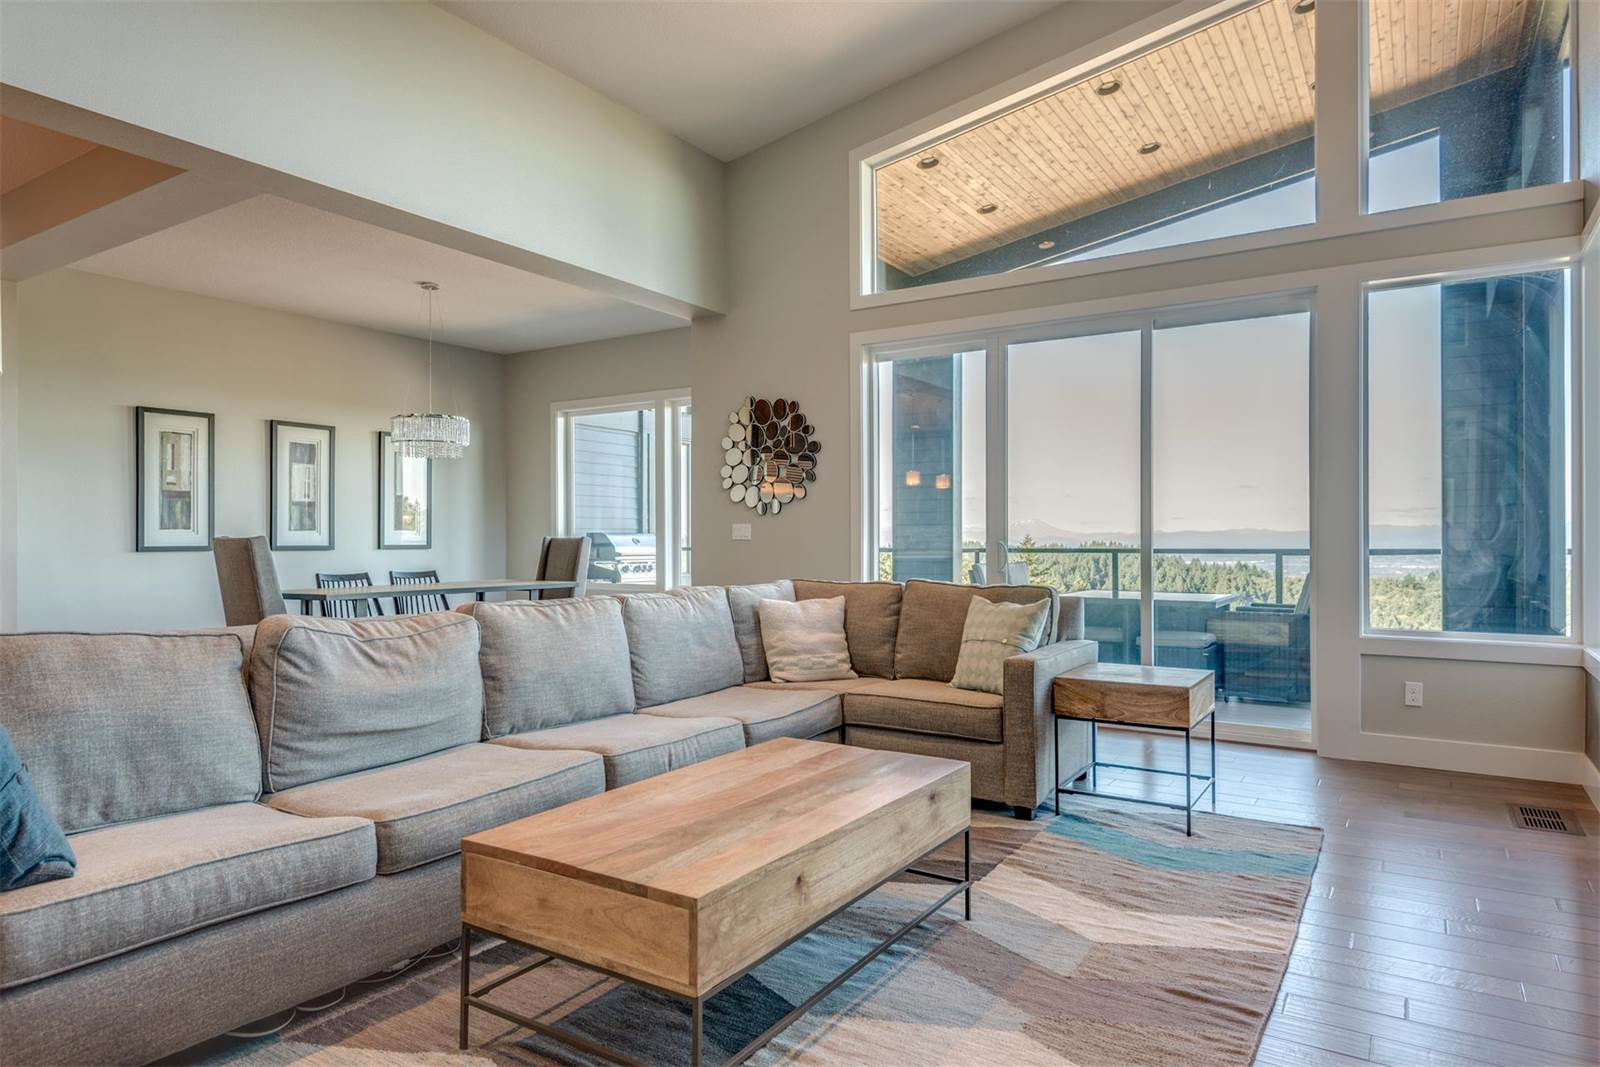 Incredible views of downtown Portland, Mt. Adams, Mt. Rainier, Mt. St. Helens, and Mt Hood can be seen from this newly built 4,210-square-foot home in the city's West Hills, a scenic area which links to the city's extensive network of bike trails.